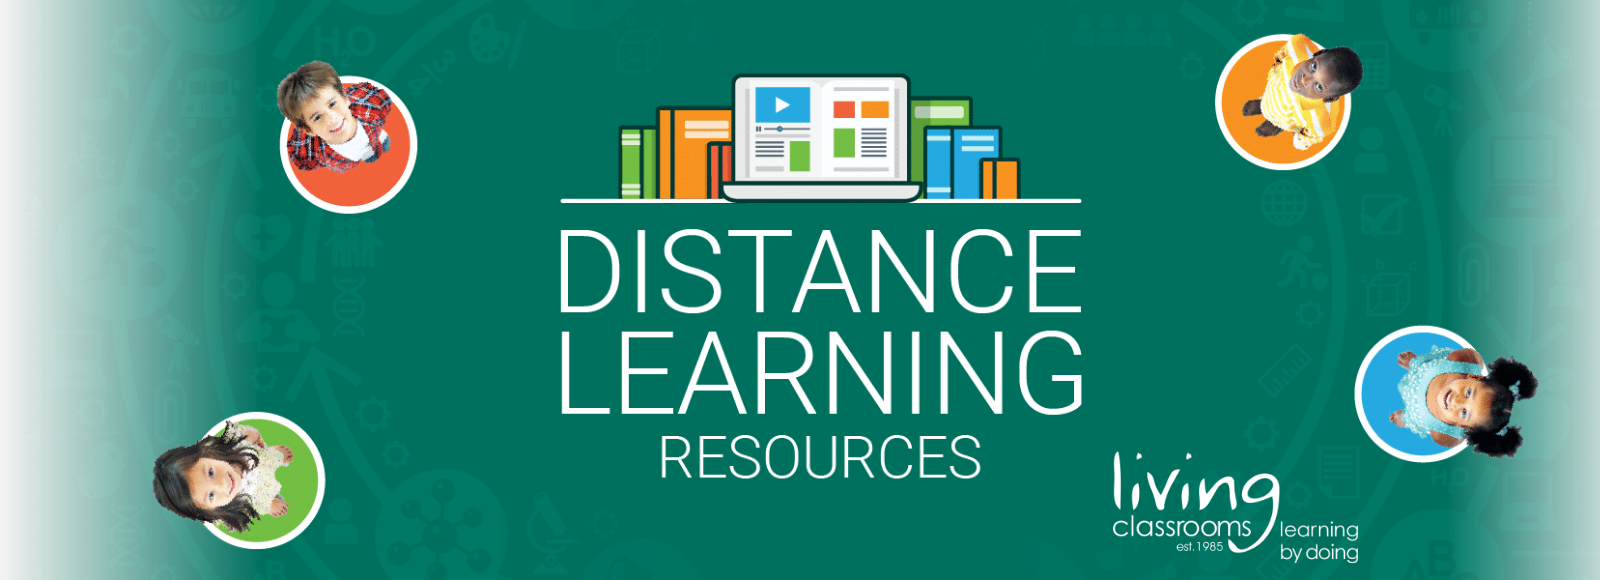 Living Classrooms Living Classrooms Distance Learning Library Living Classrooms